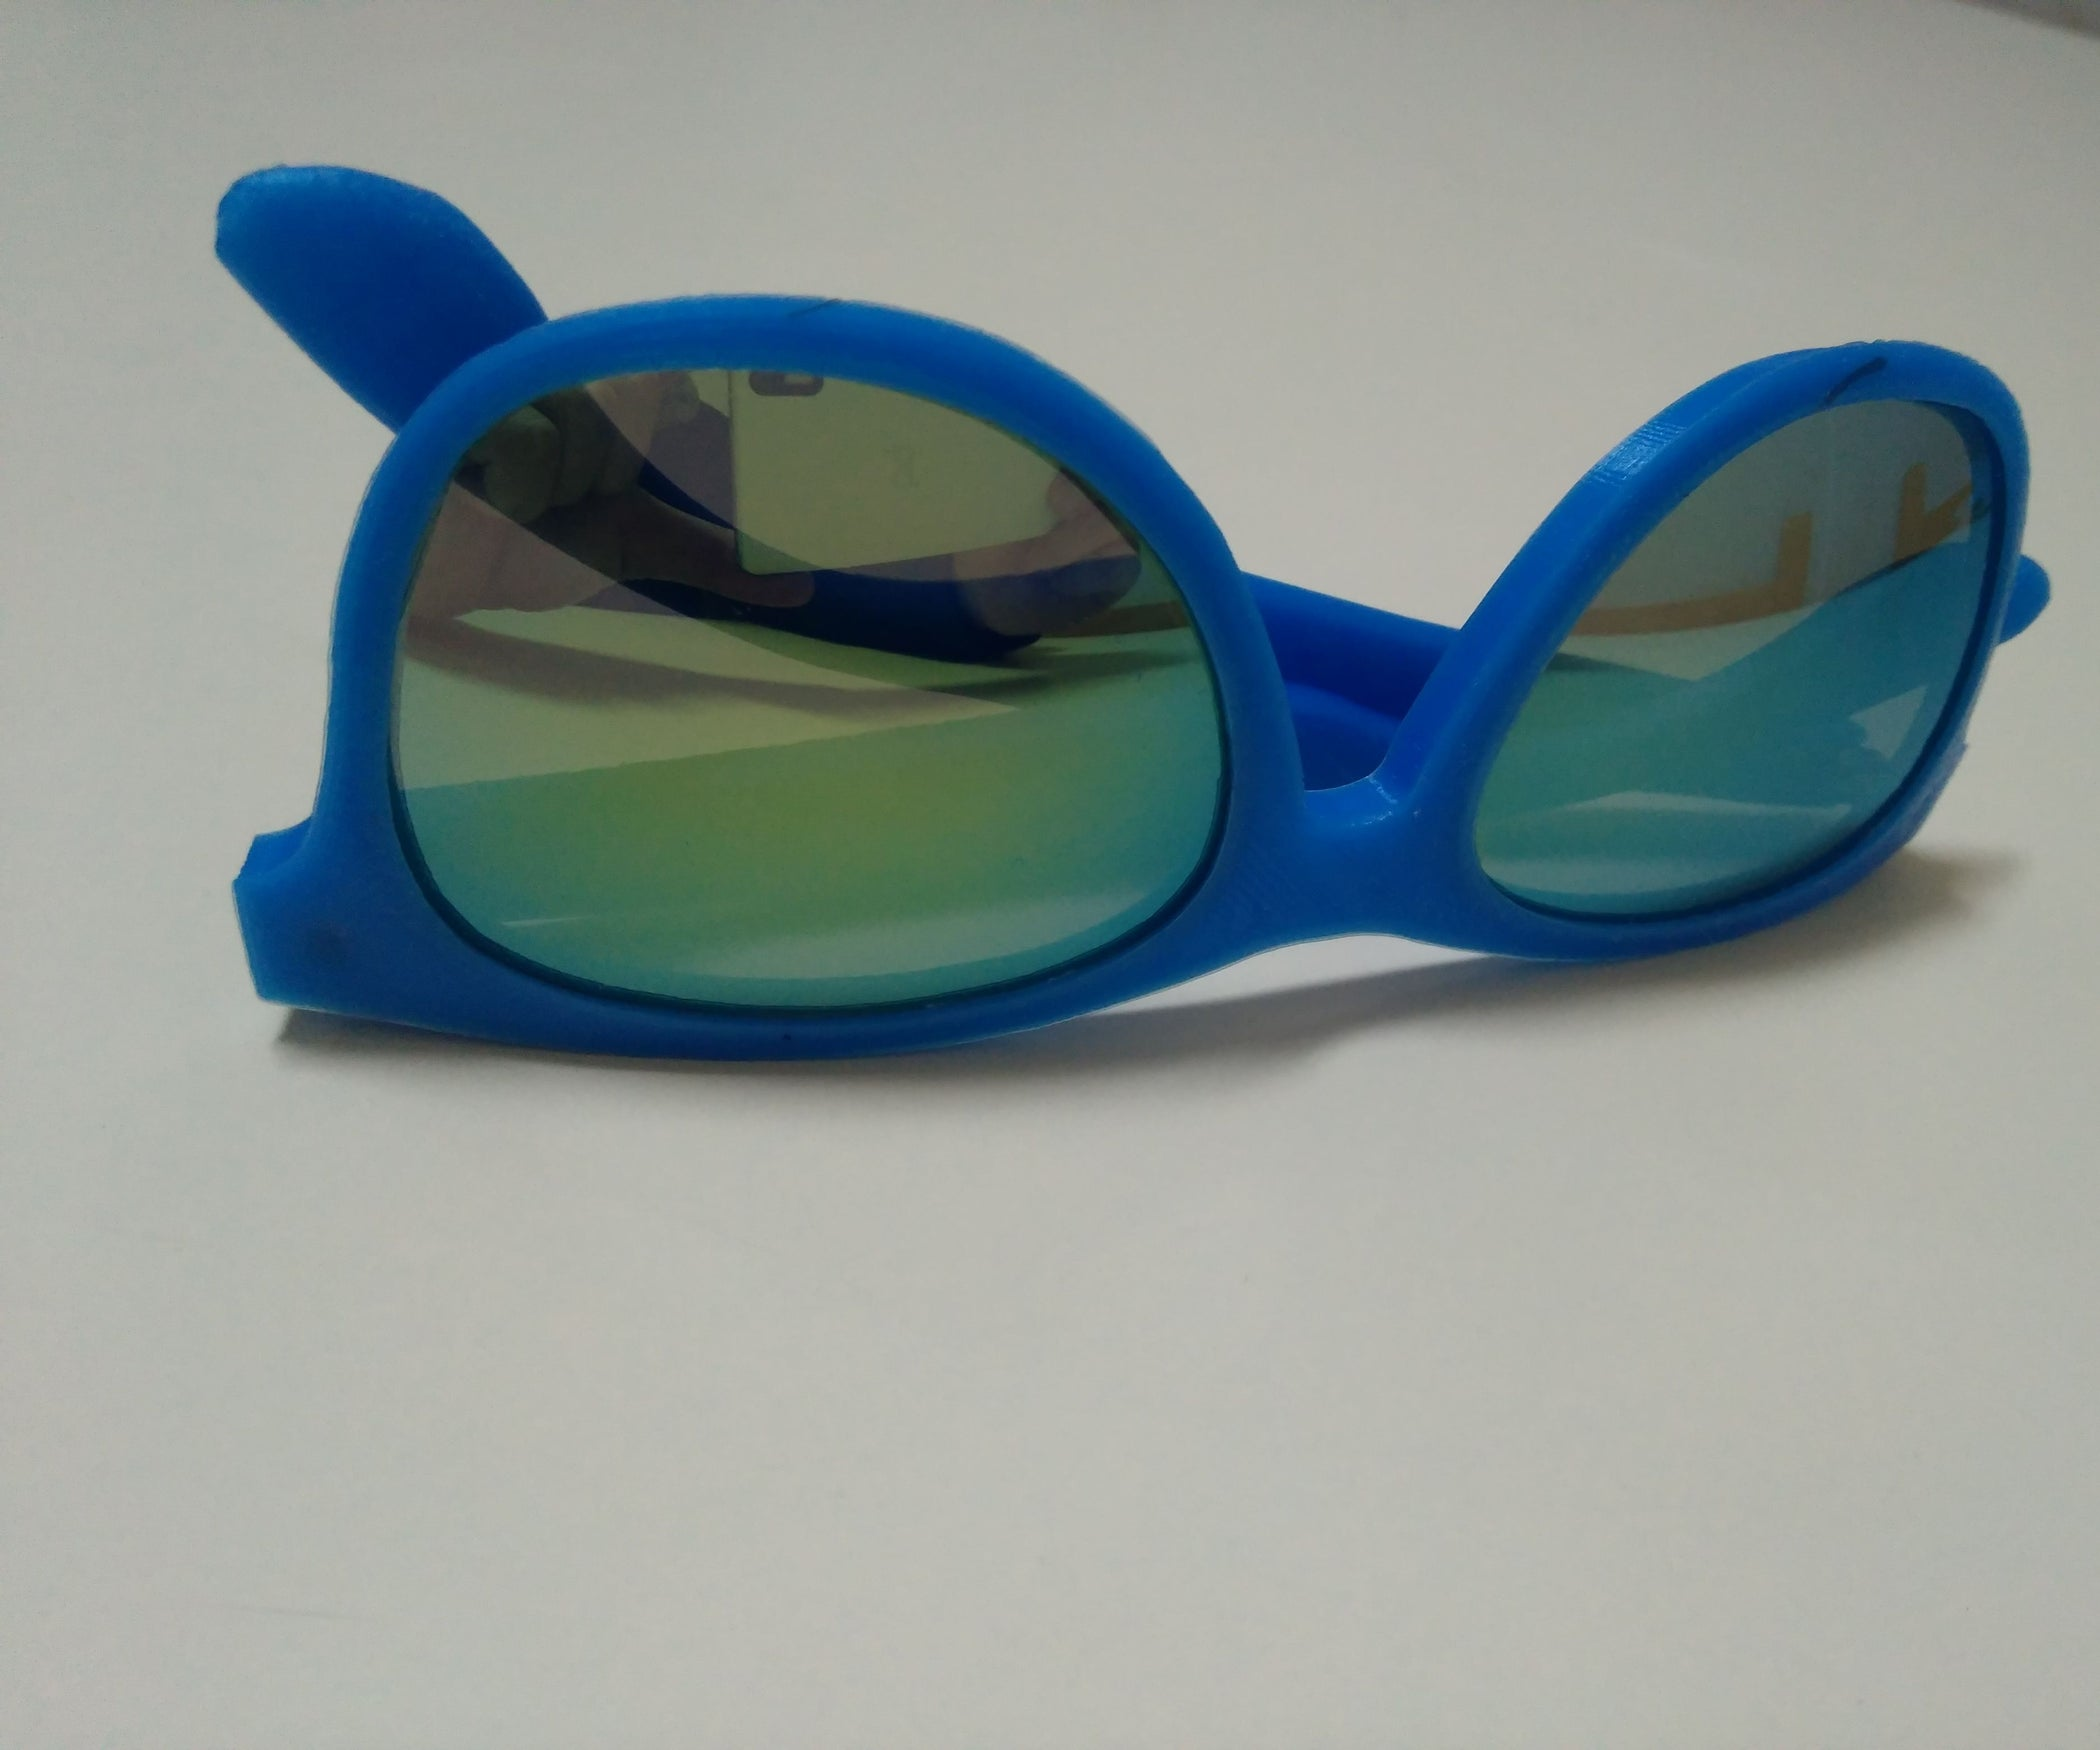 f53ee7ab48c4 3D Printed Sunglasses (Wayfarer Style)  7 Steps (with Pictures)